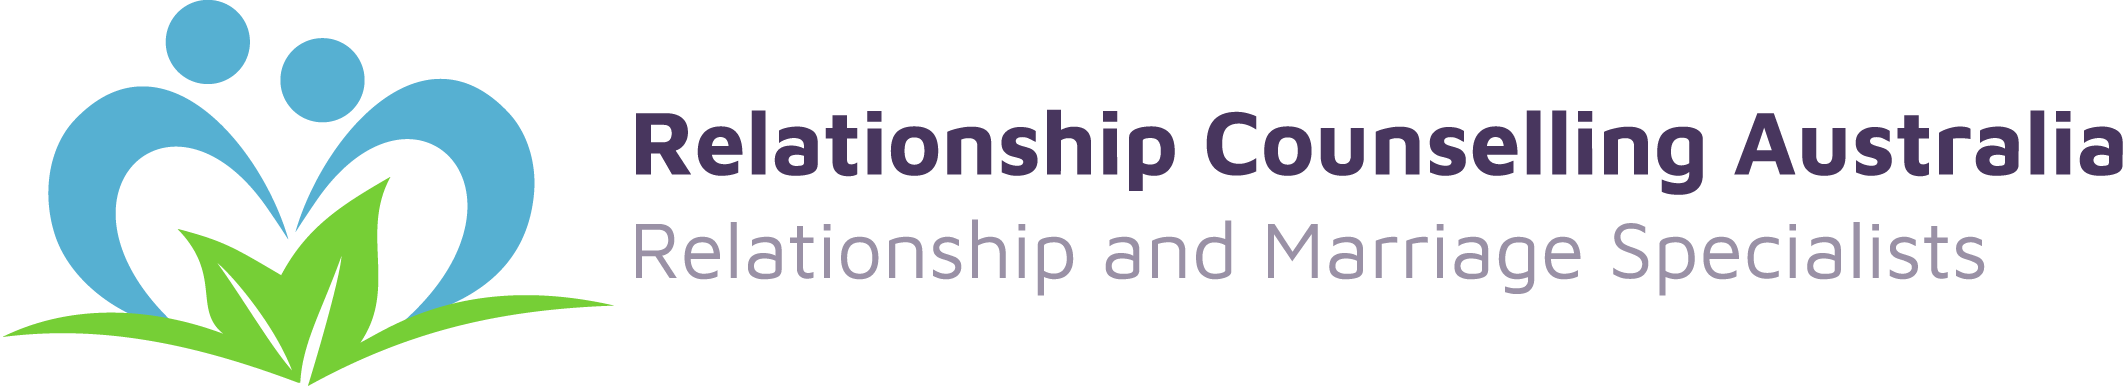 RELATIONSHIP COUNSELLING AUSTRALIA